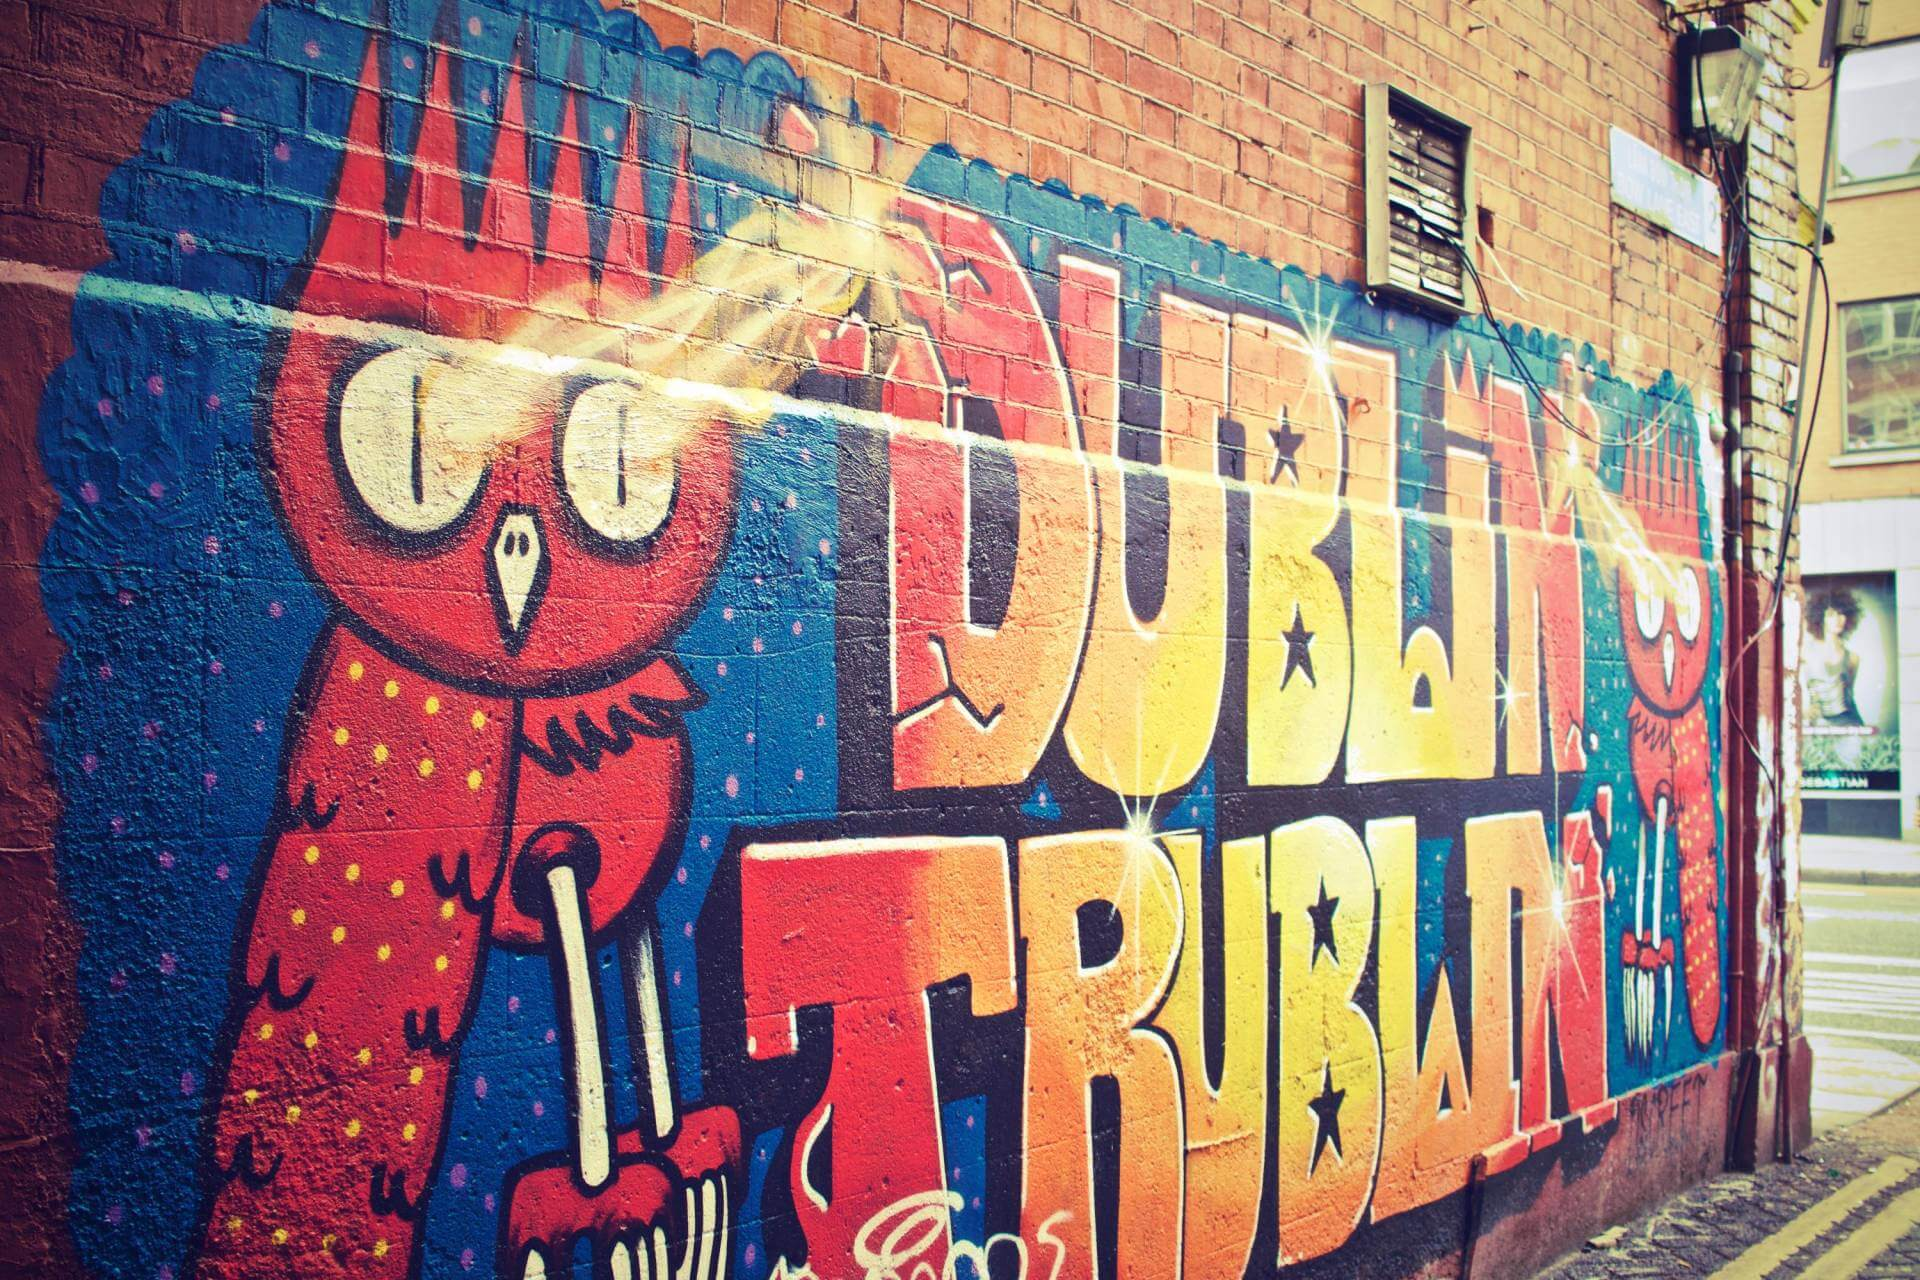 A weekend in dublin my guide to 48 hours in dublin where is tara